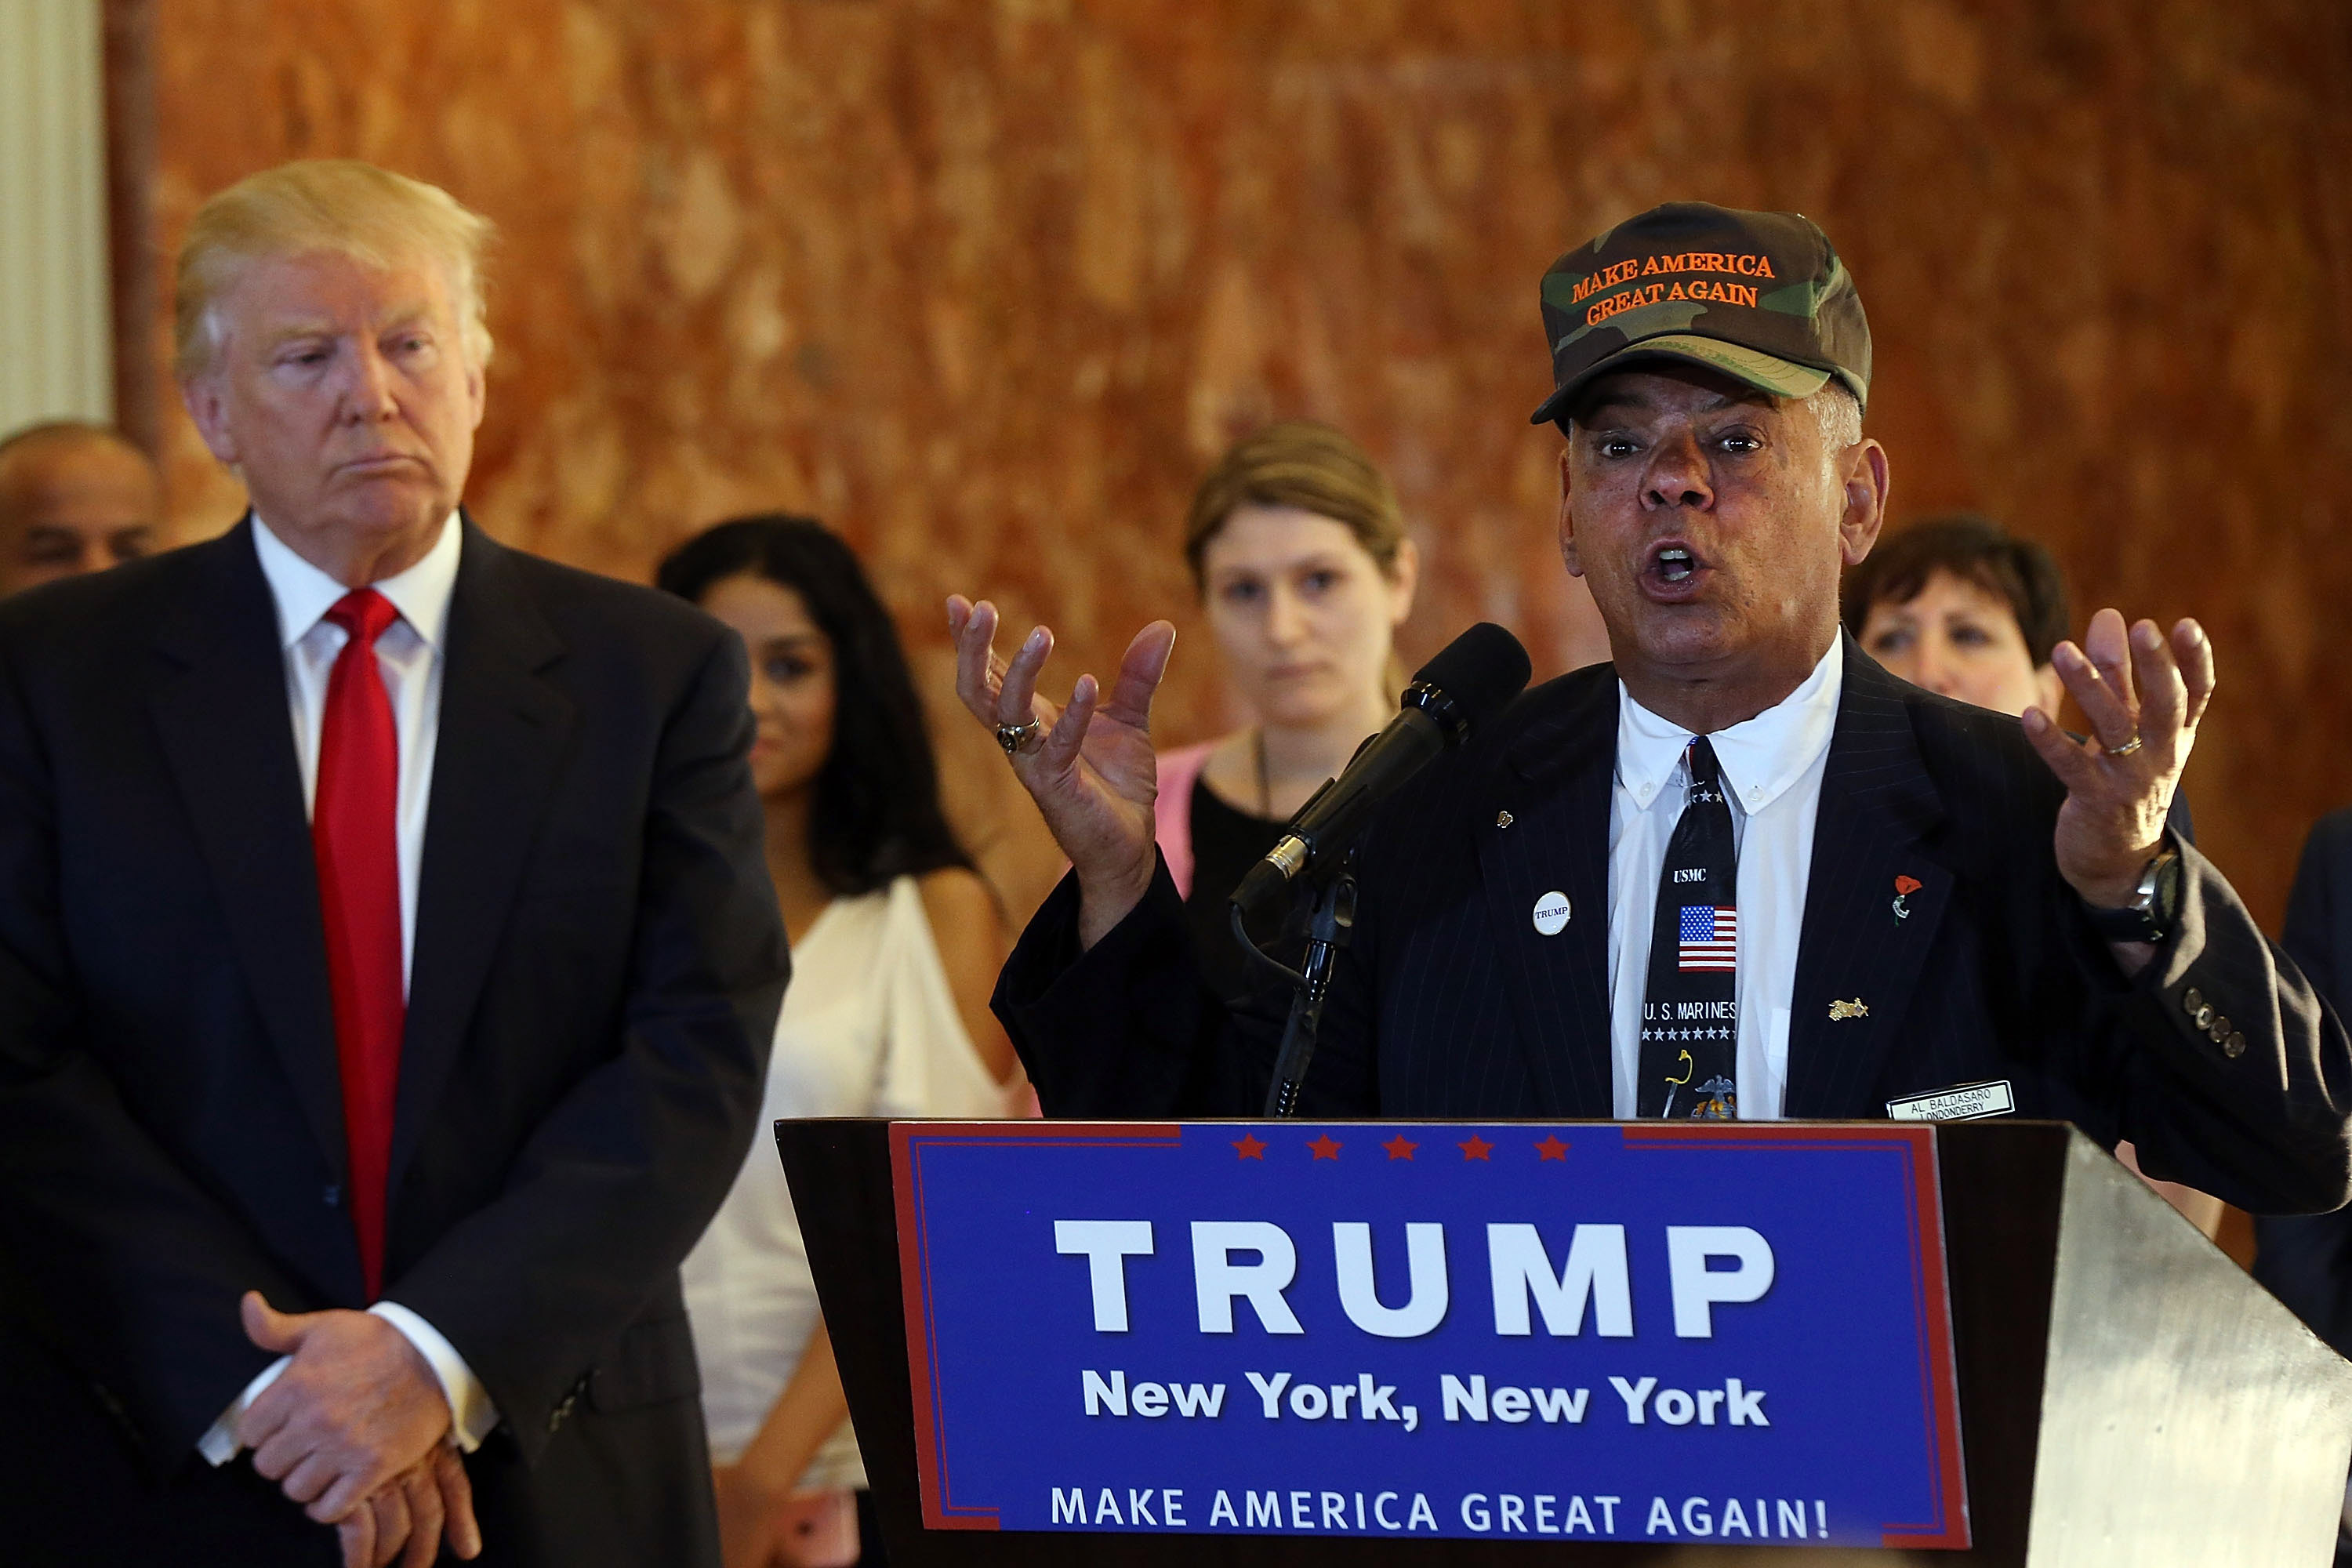 Former Marine Al Baldasaro defends the donations of Republican presidential candidate Donald Trump at a news conference at Trump Tower where Trump addressed issues about the money he pledged to donate to veterans  groups on May 31, 2016 in New York City.